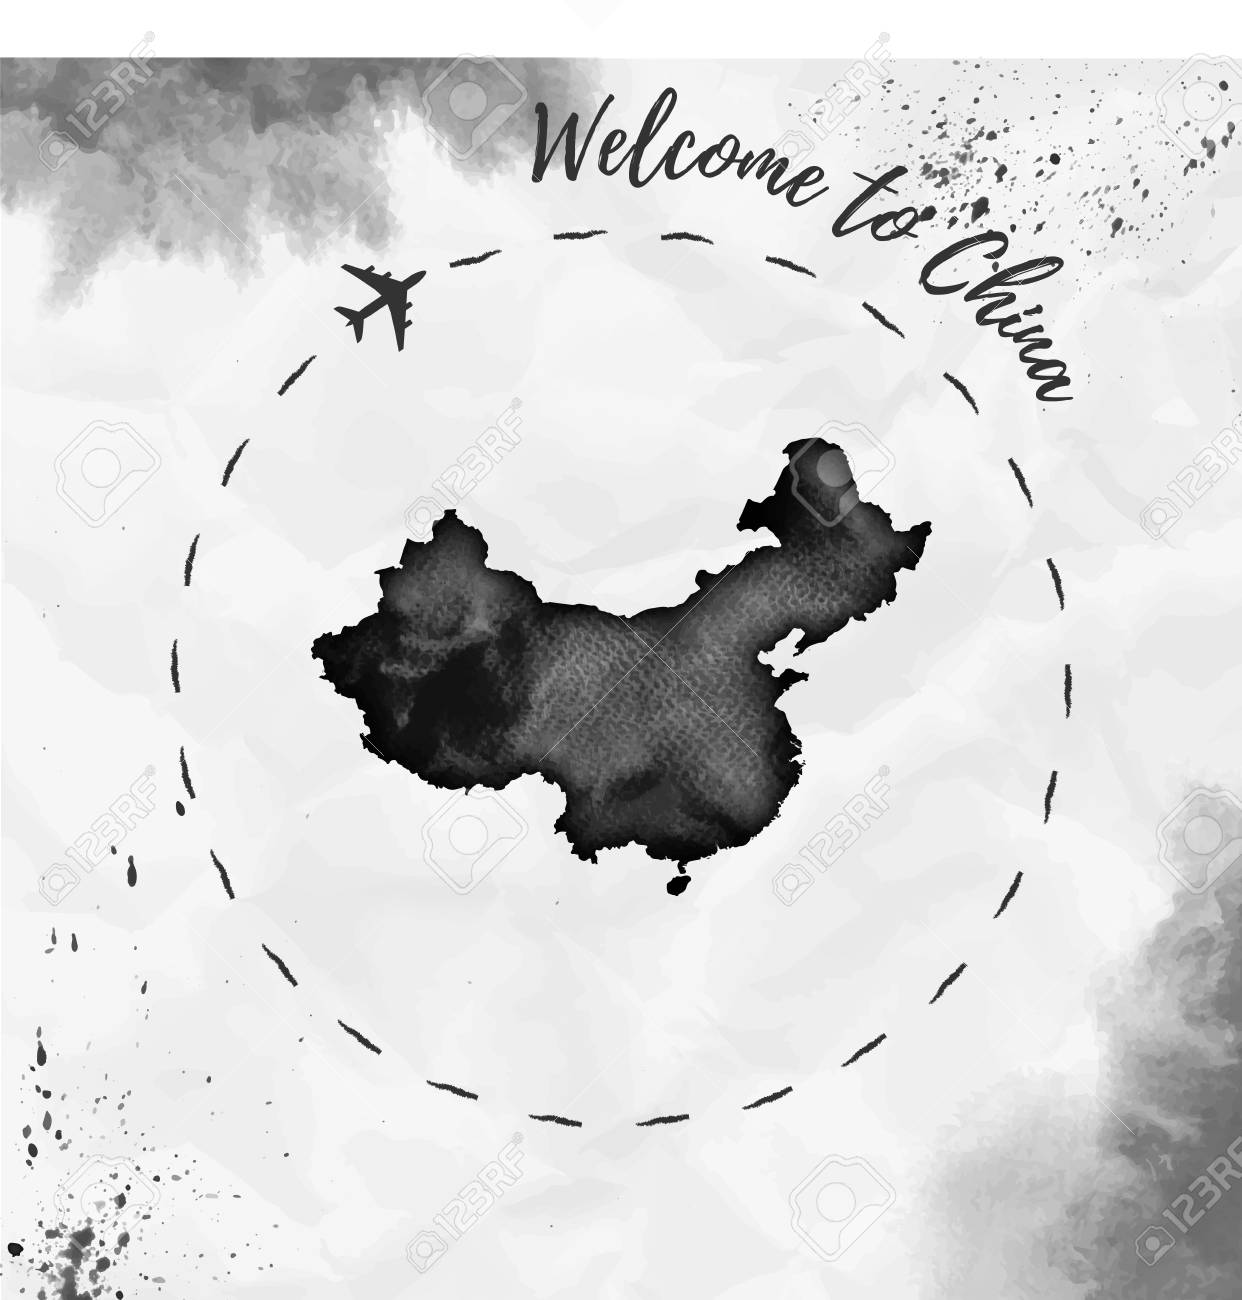 China Map Poster.China Watercolor Map In Black Colors Welcome To China Poster